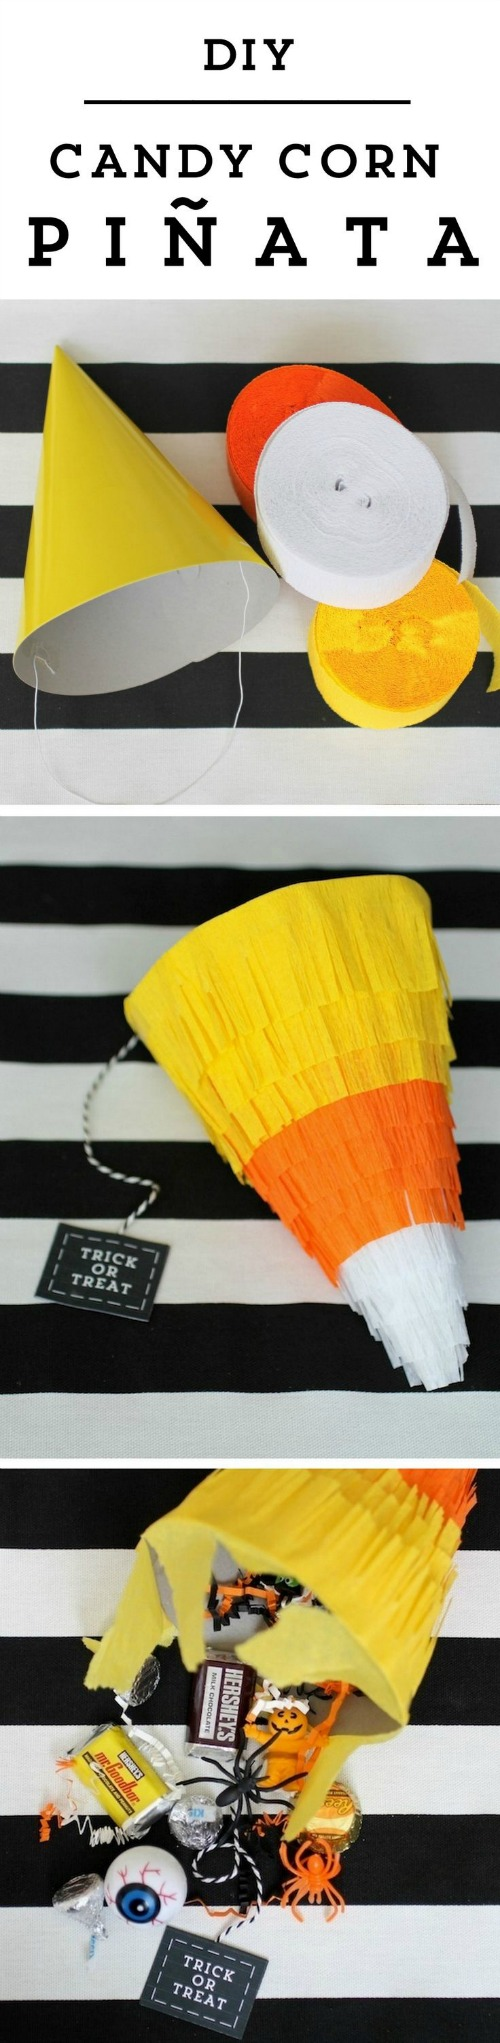 "DIY Candy Corn Piñata  - <a href=""http://jessexplainsitall.com/diy-candy-corn-pinata/"" target=""_blank"">Jess Explains It All</a>"